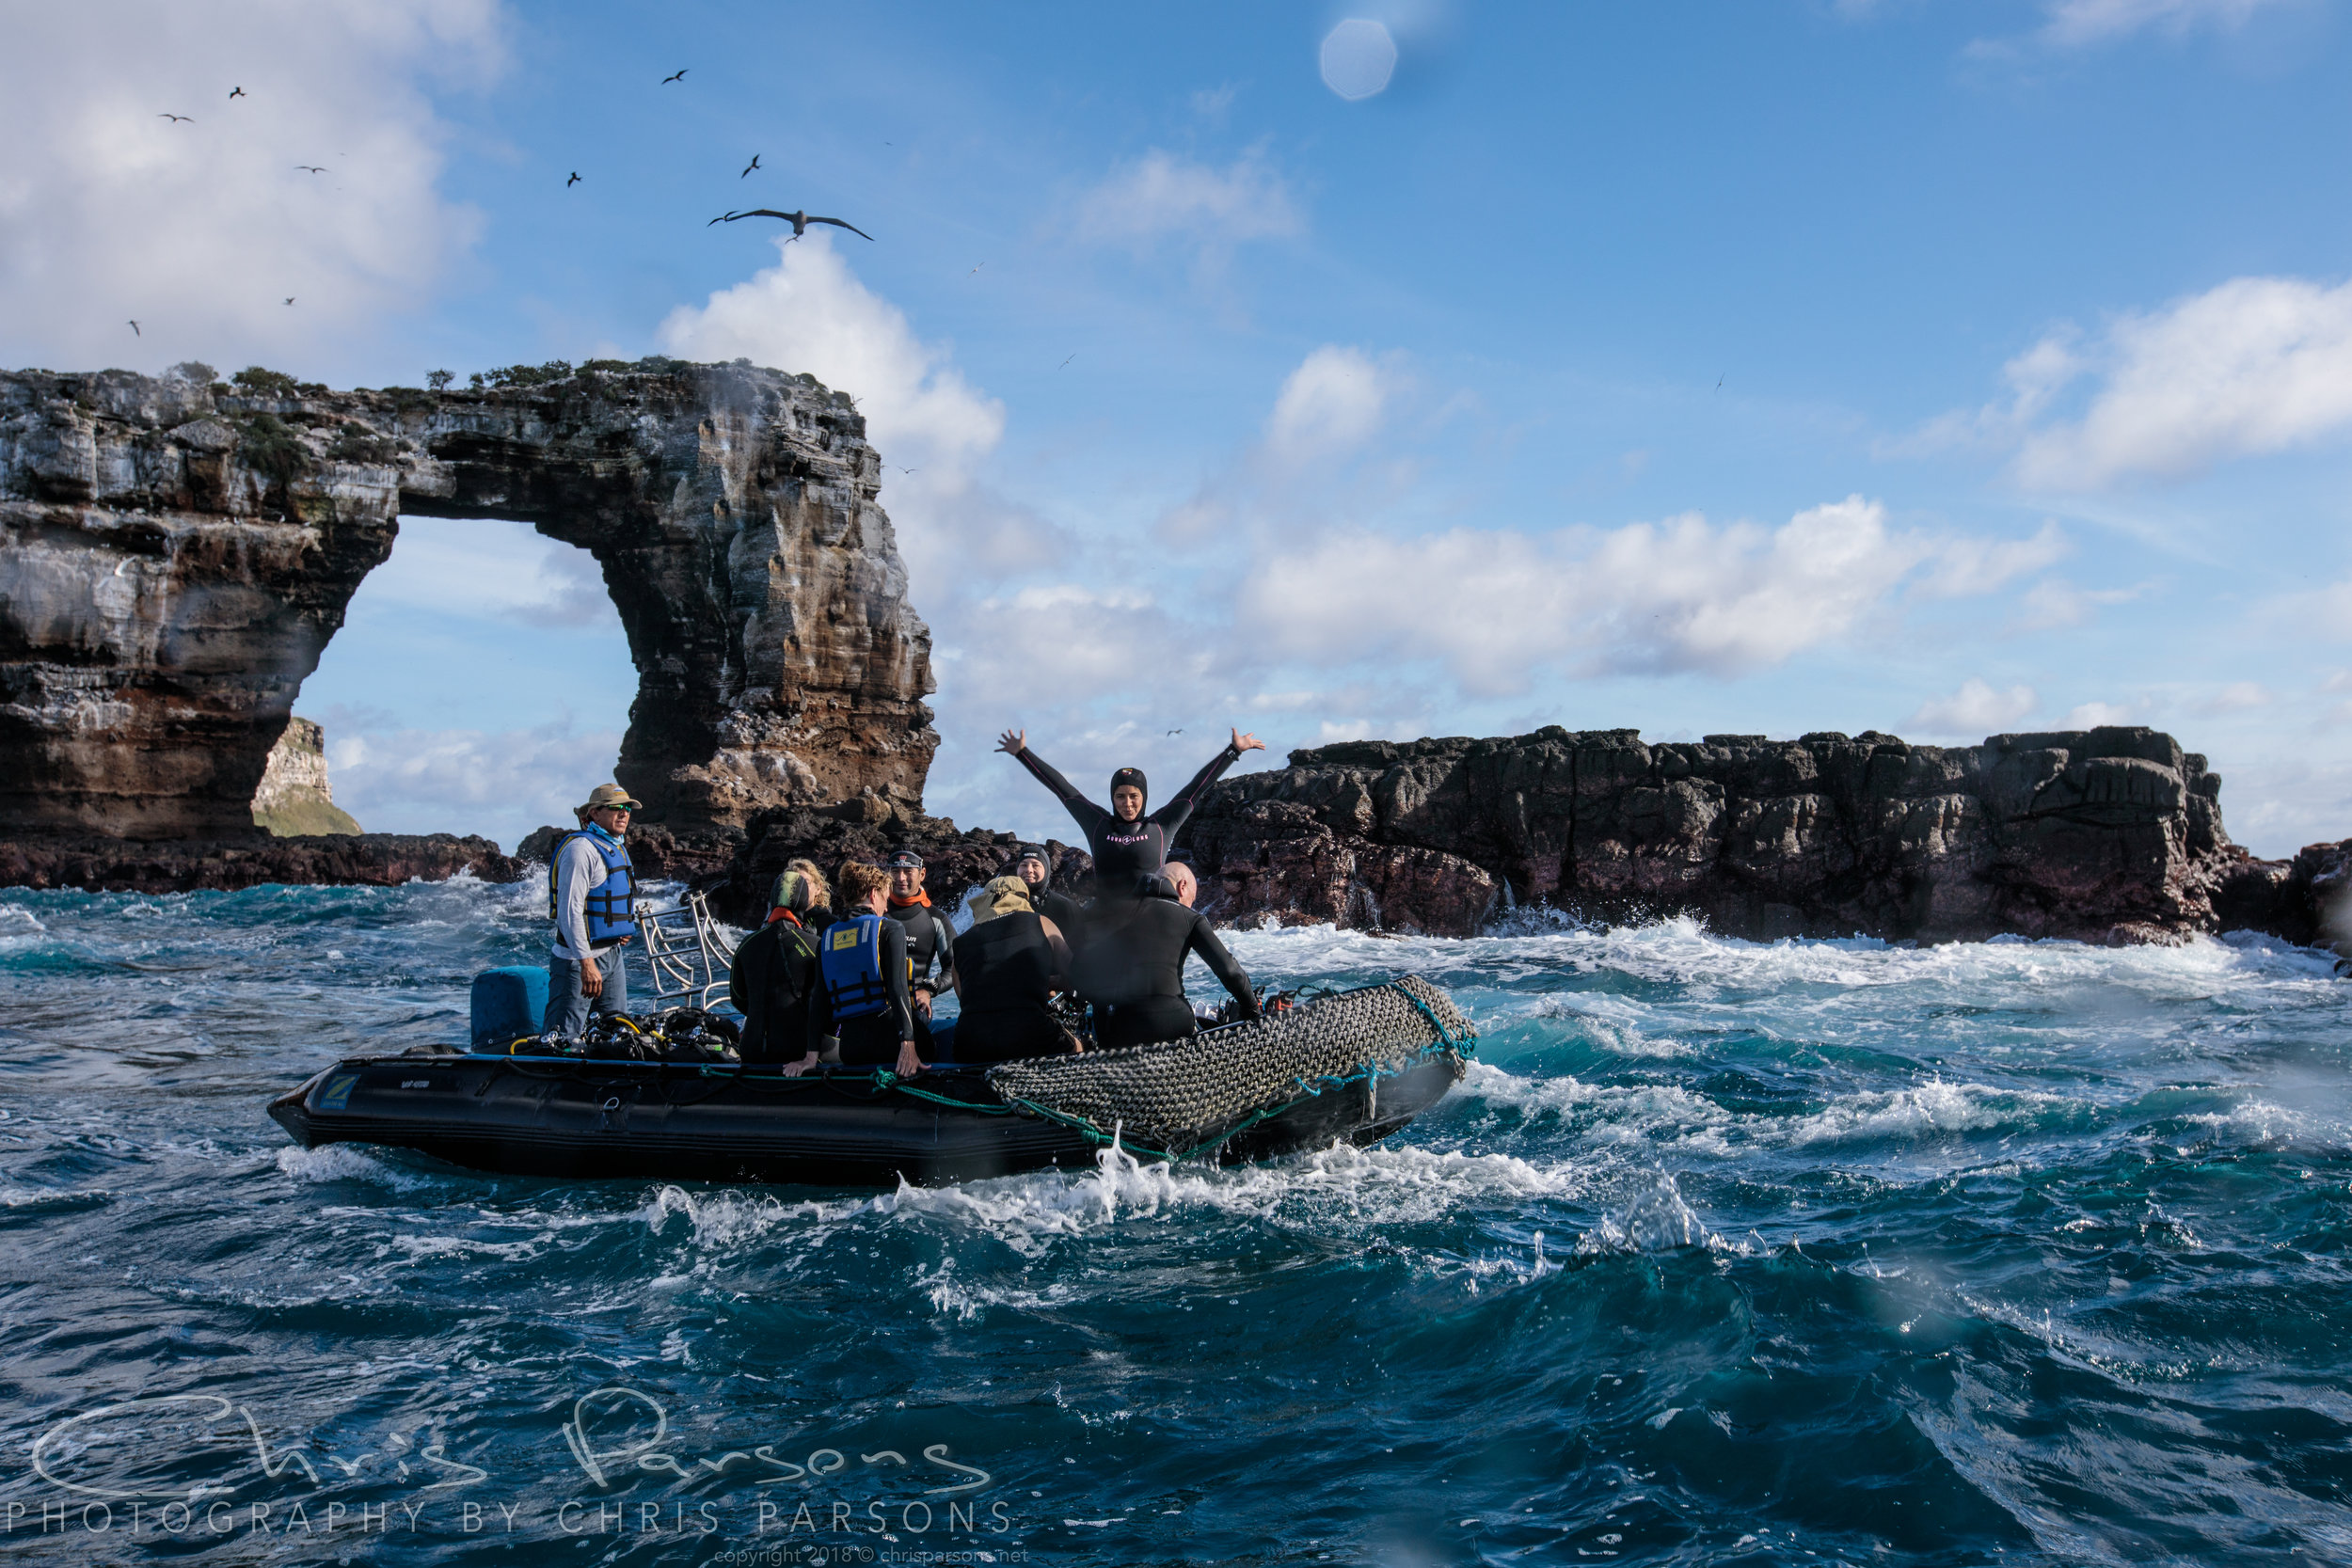 Darwin's Arch - one of the very best dive sites in the world